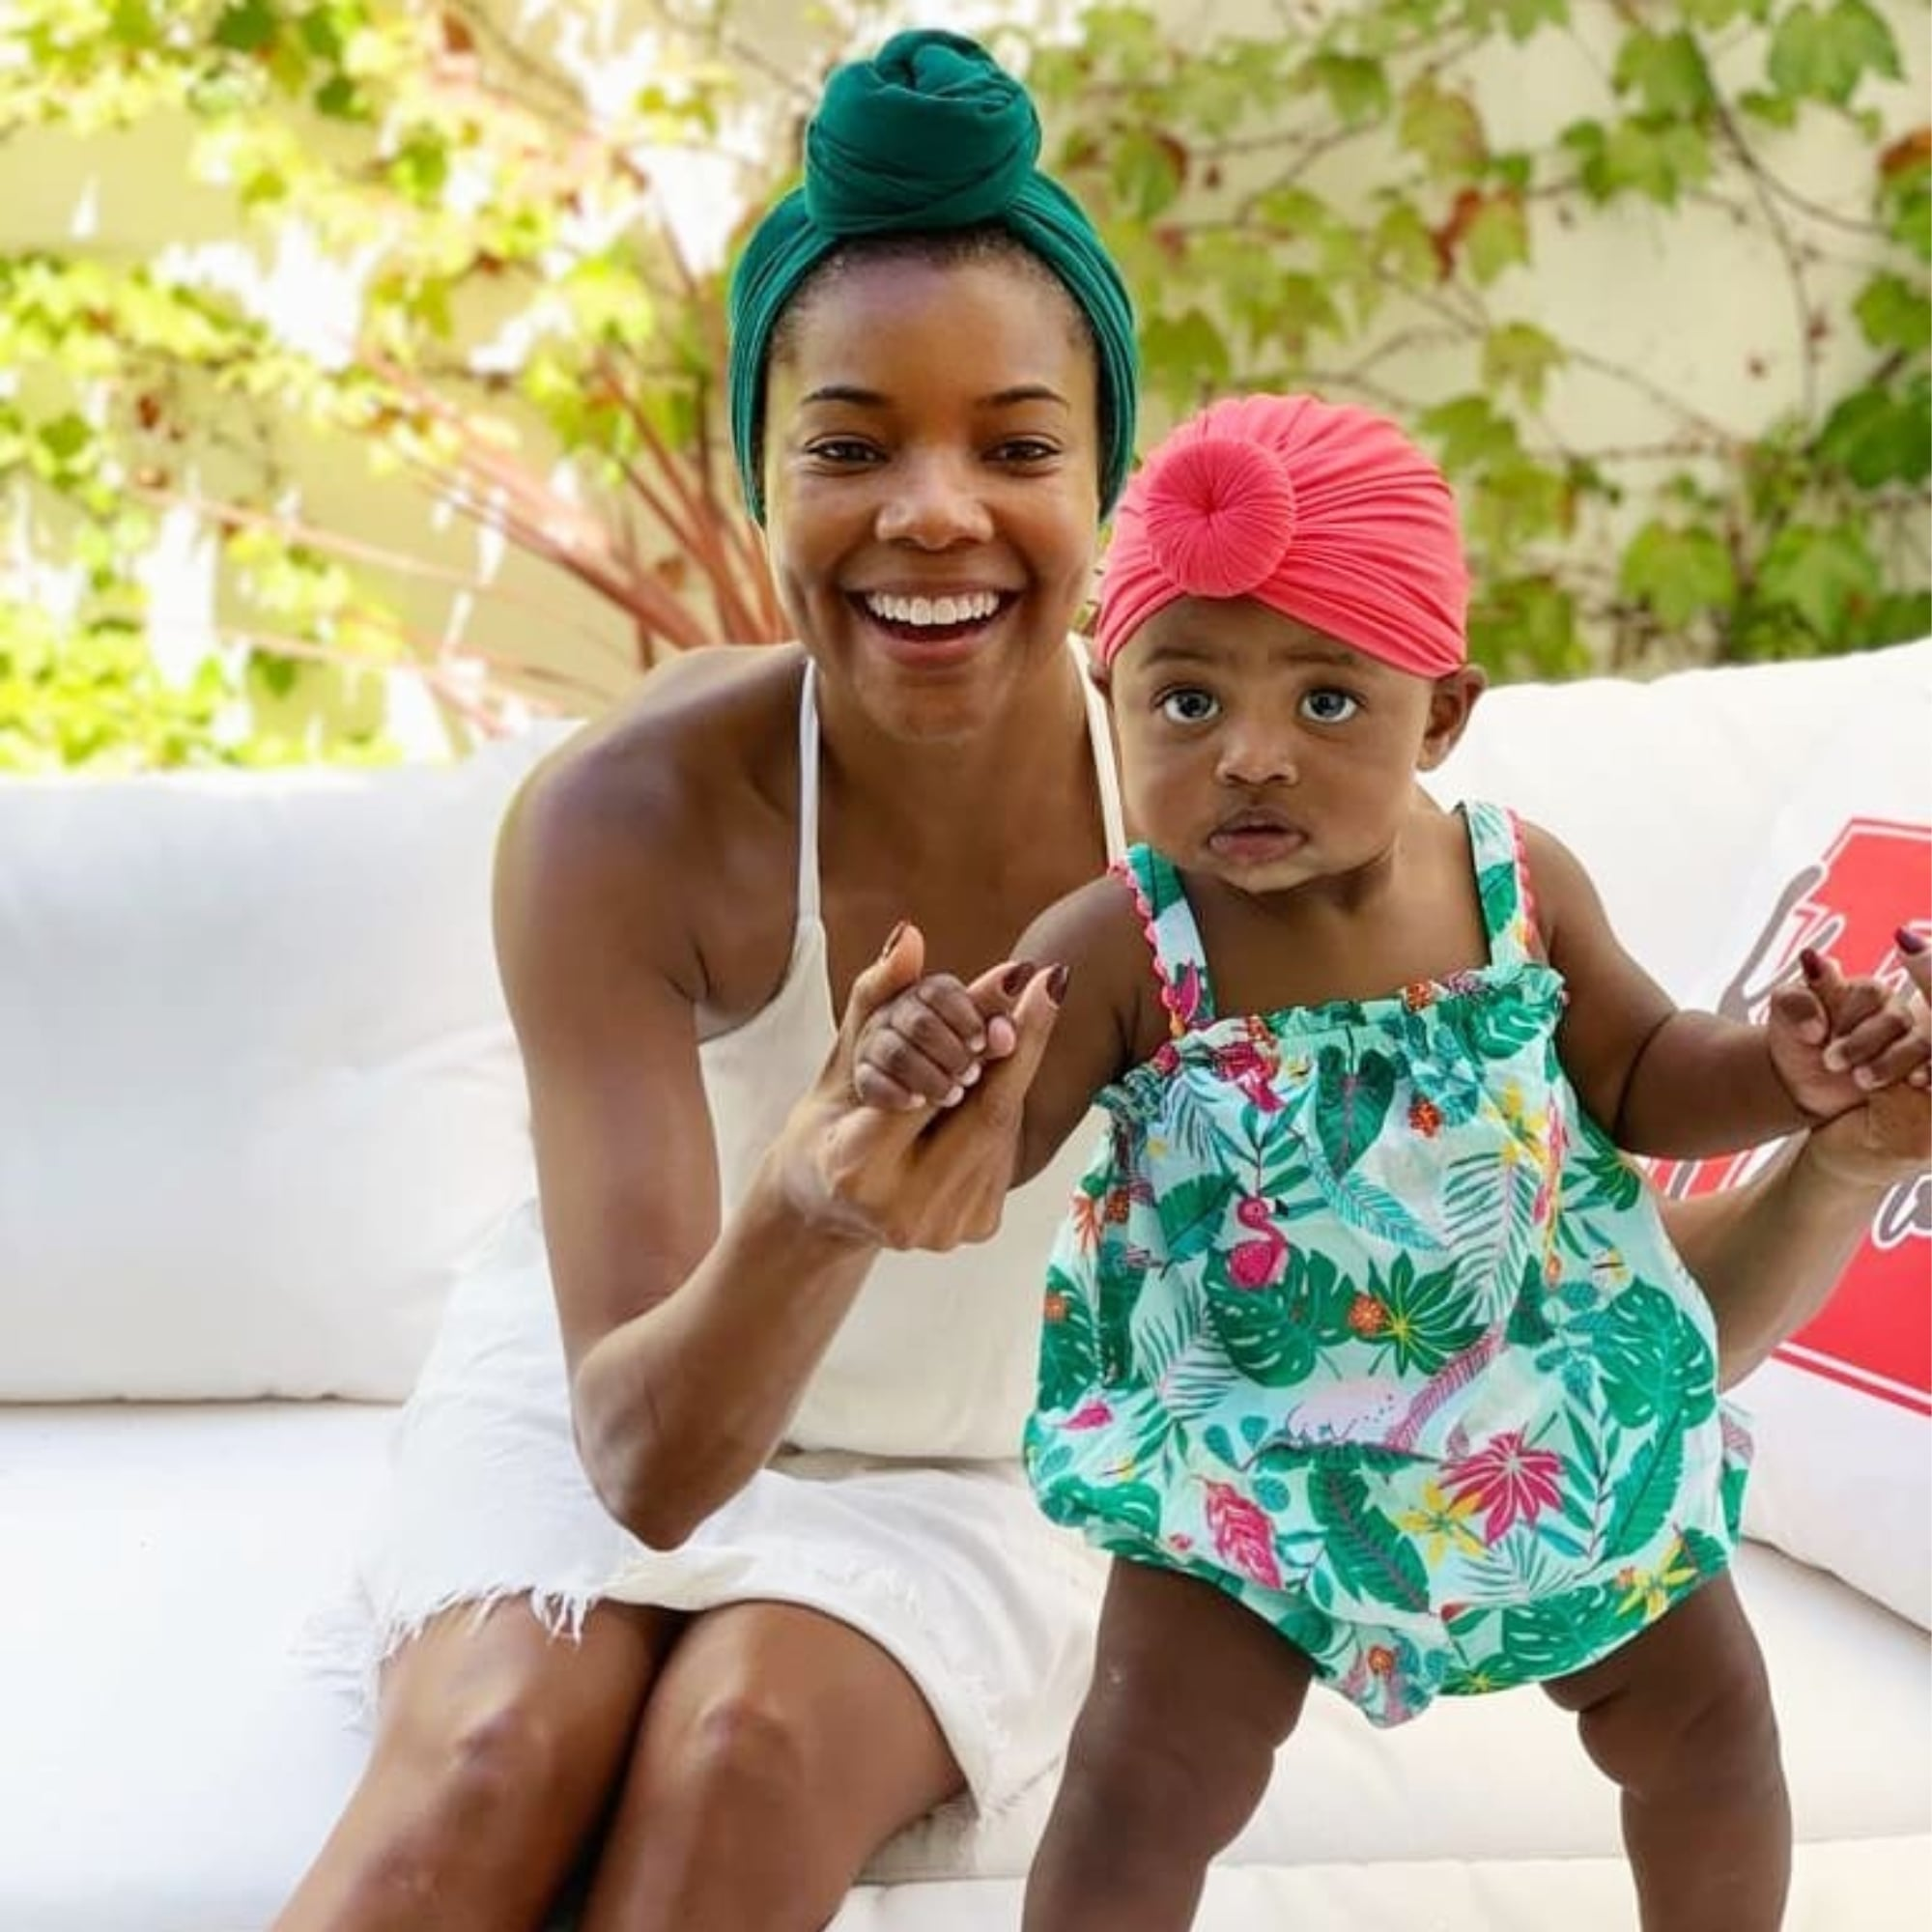 Gabrielle Union's Video With Baby Kaavia At The Pool Will Make Your Day